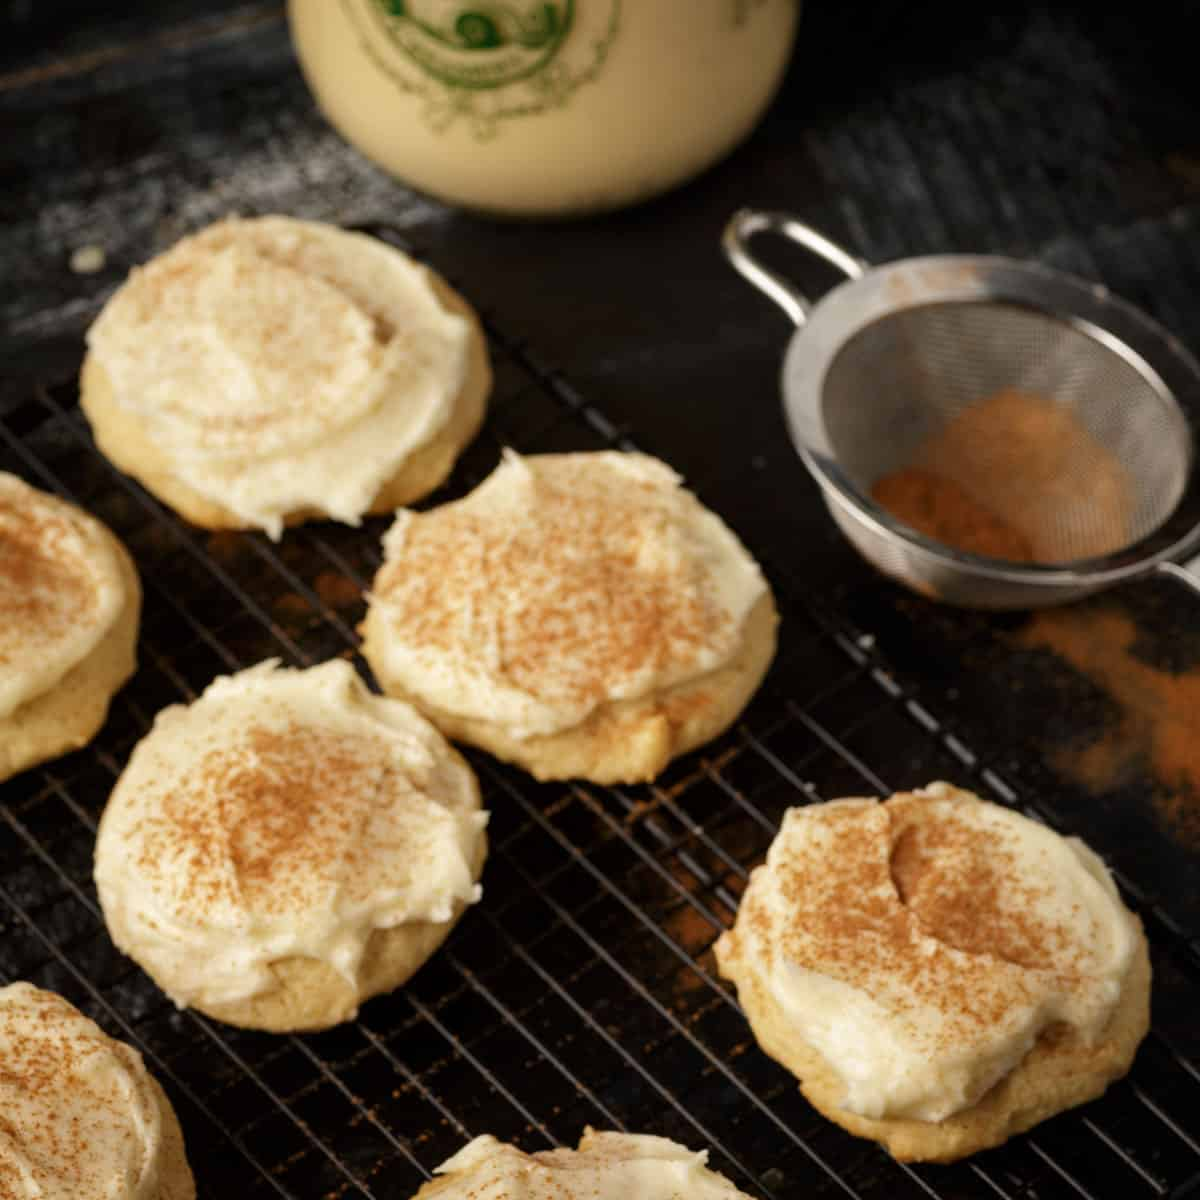 A rack of frosted eggnog cookies with cinnamon for sprinkling